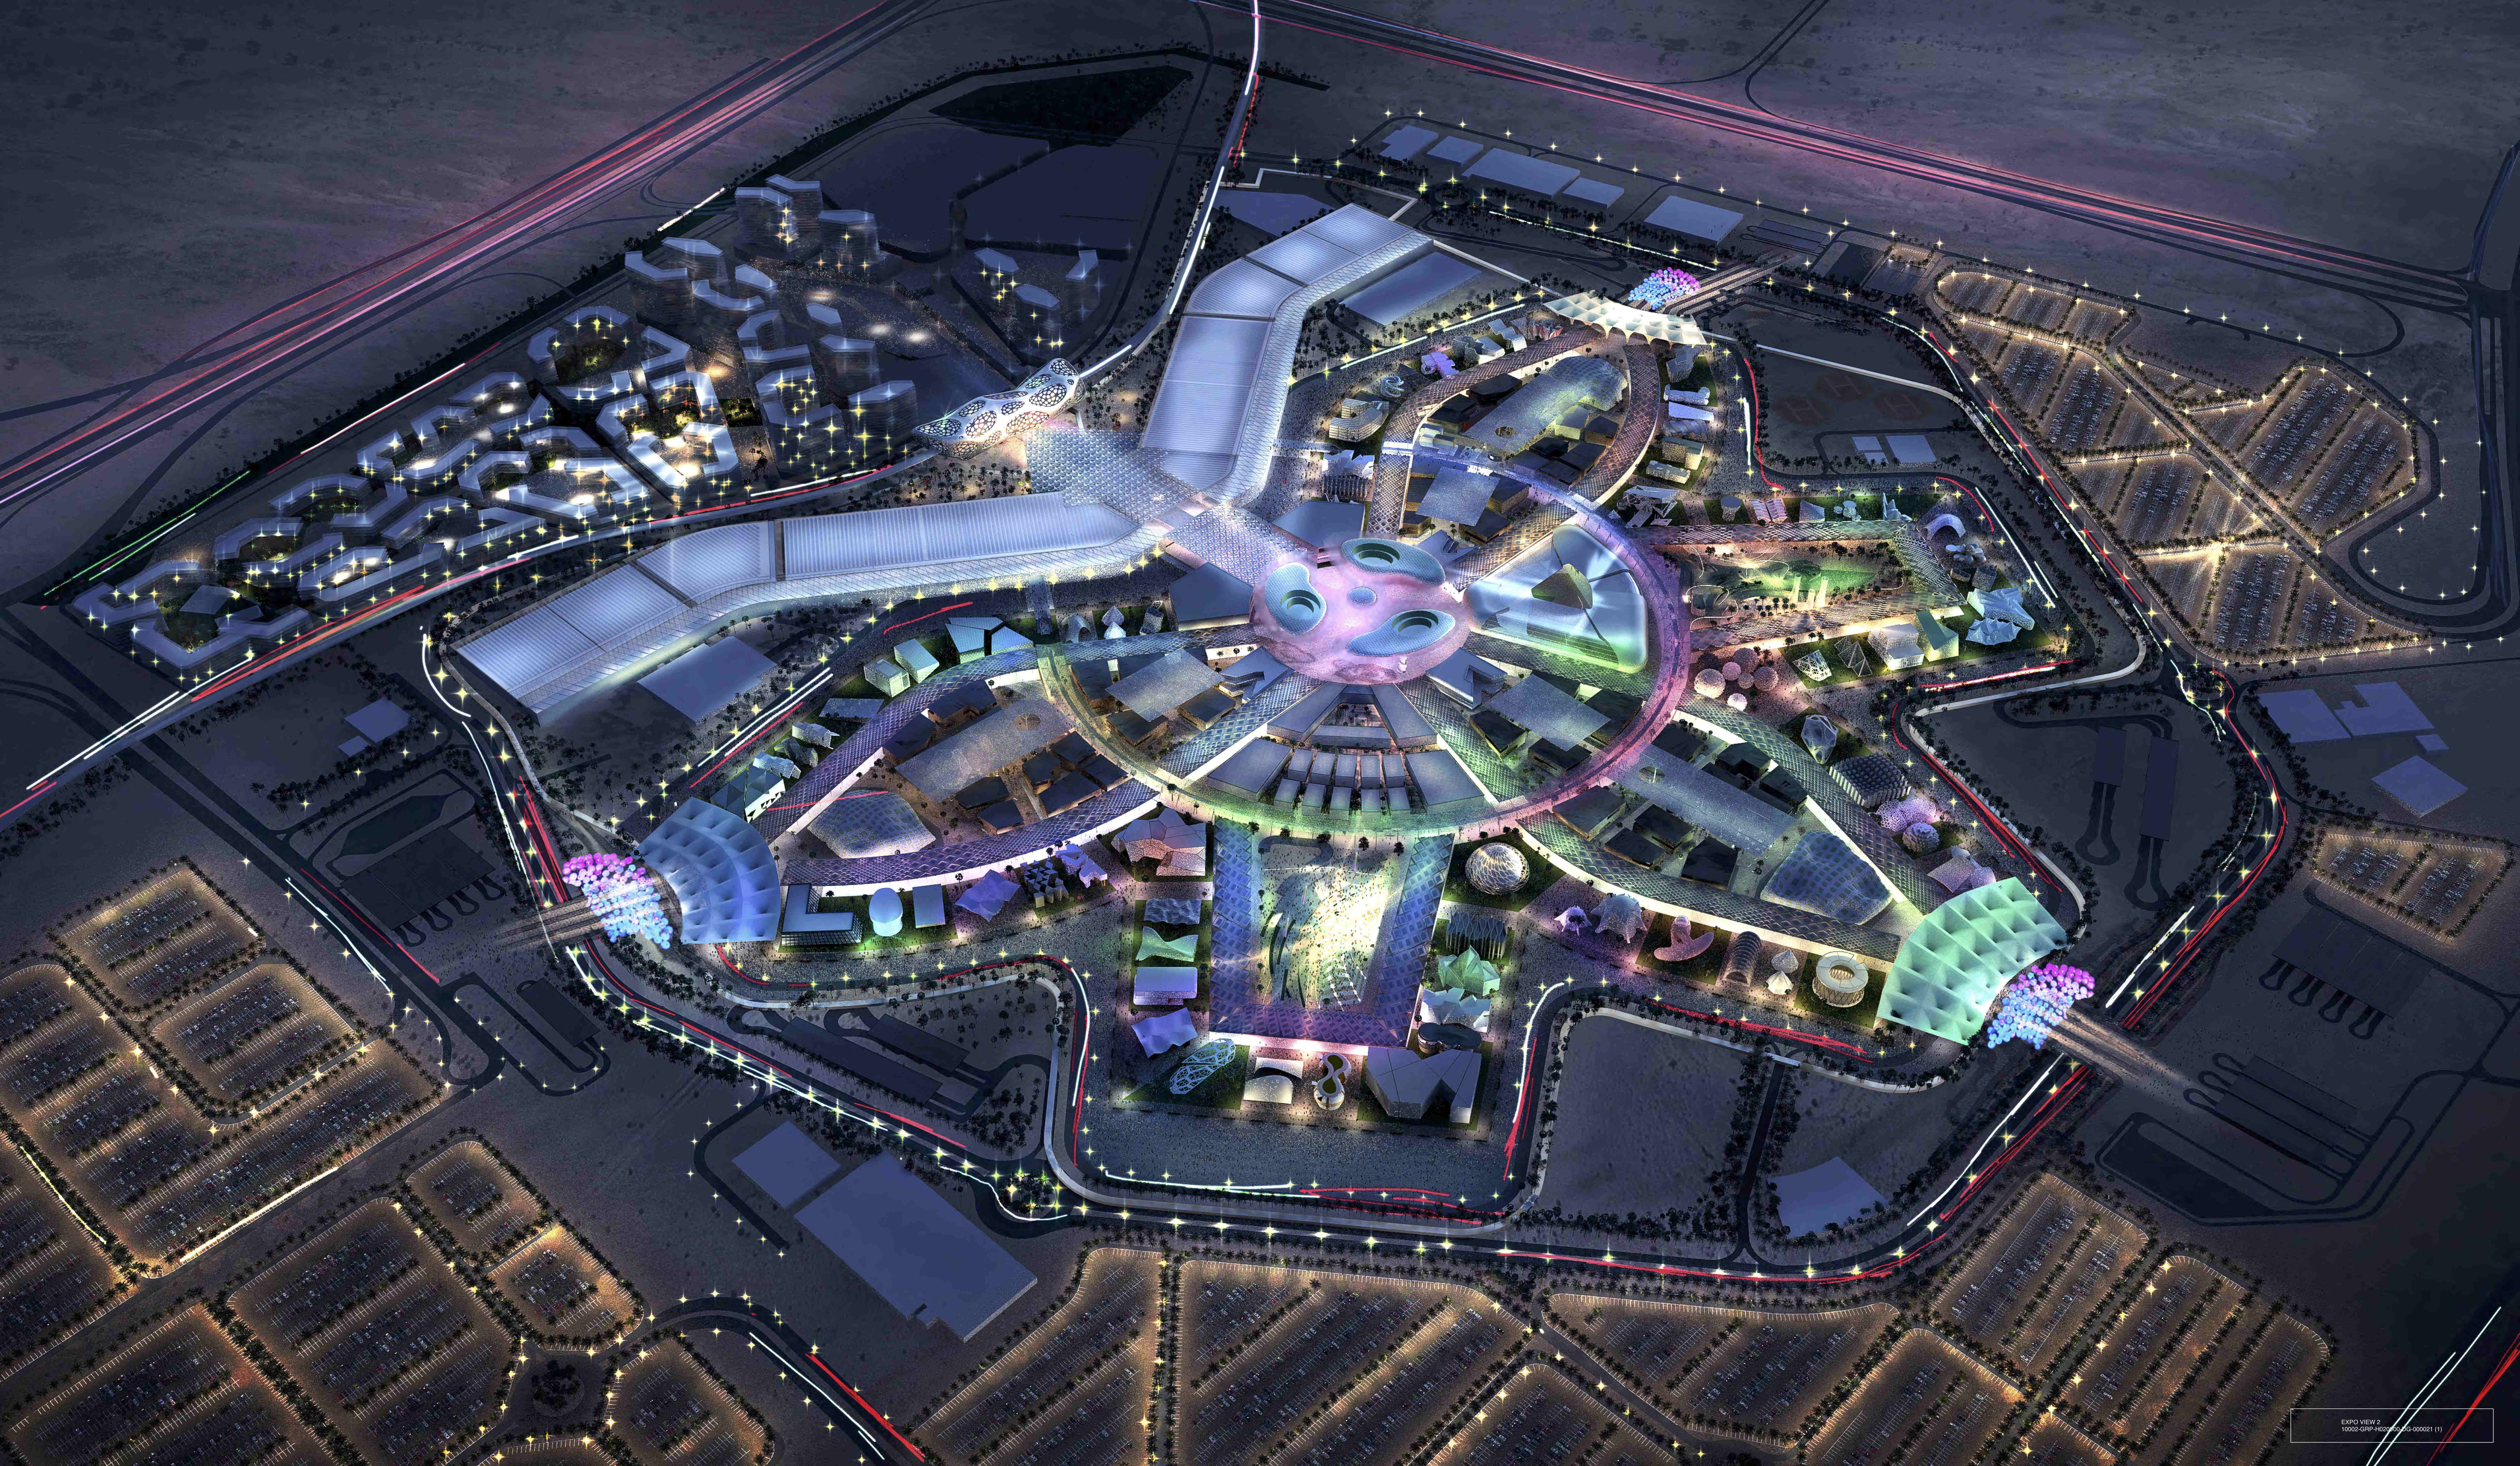 Expo 2020 dubai reveals its master plan at arab media - Home expo design center locations ...